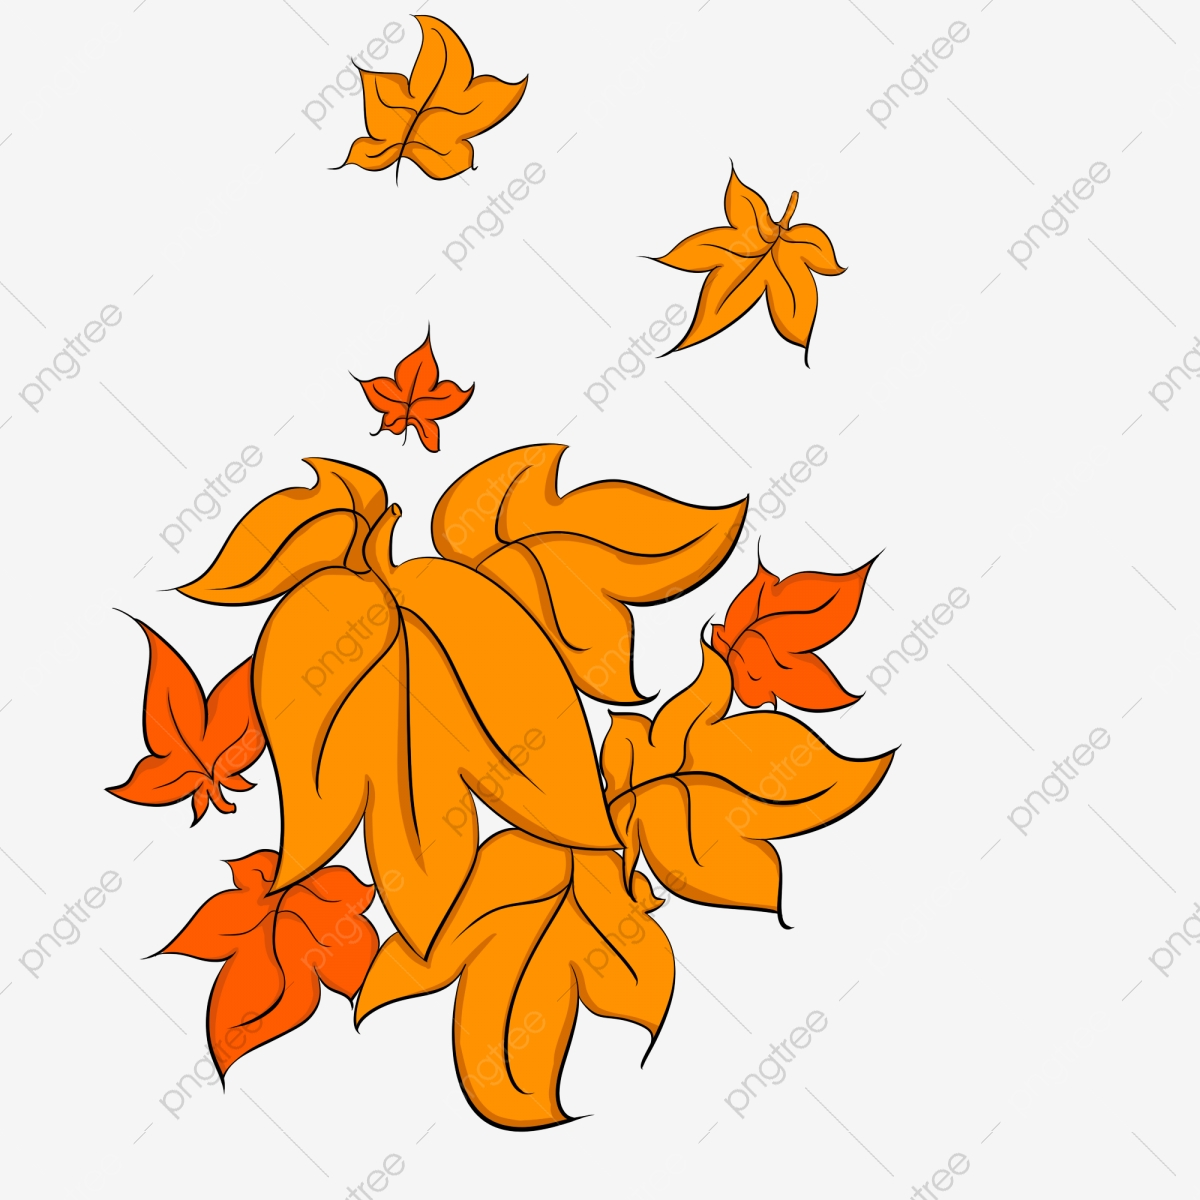 Hand Drawn Leaves A Pile Of Yellow Leaves Maple Leaf Red Maple Fallen Leaves Cartoon Maple Leaf Red Leaves Png Transparent Clipart Image And Psd File For Free Download